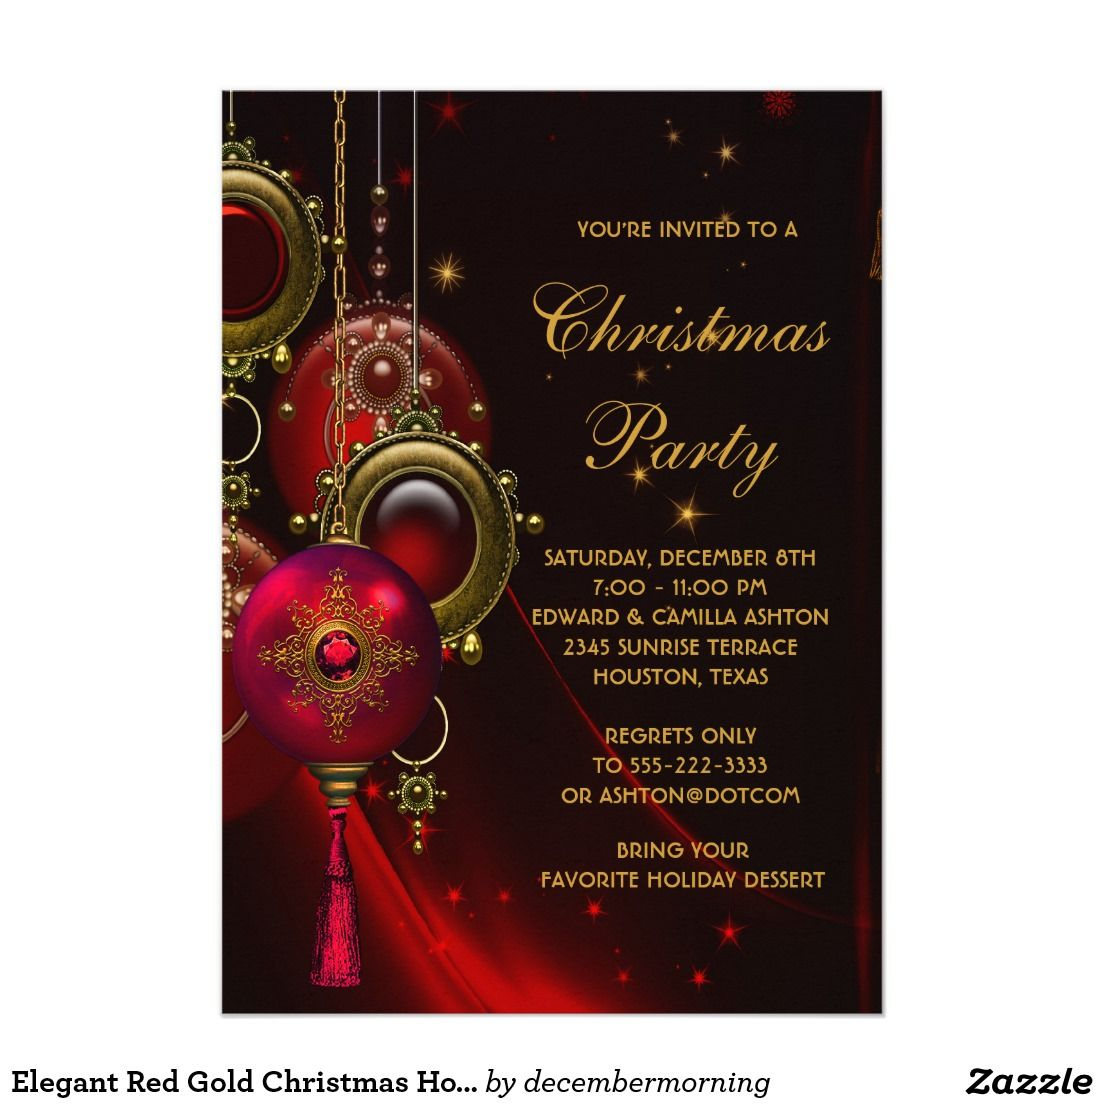 Elegant Red Gold Christmas Holiday Party Card | Christmas Closet ...